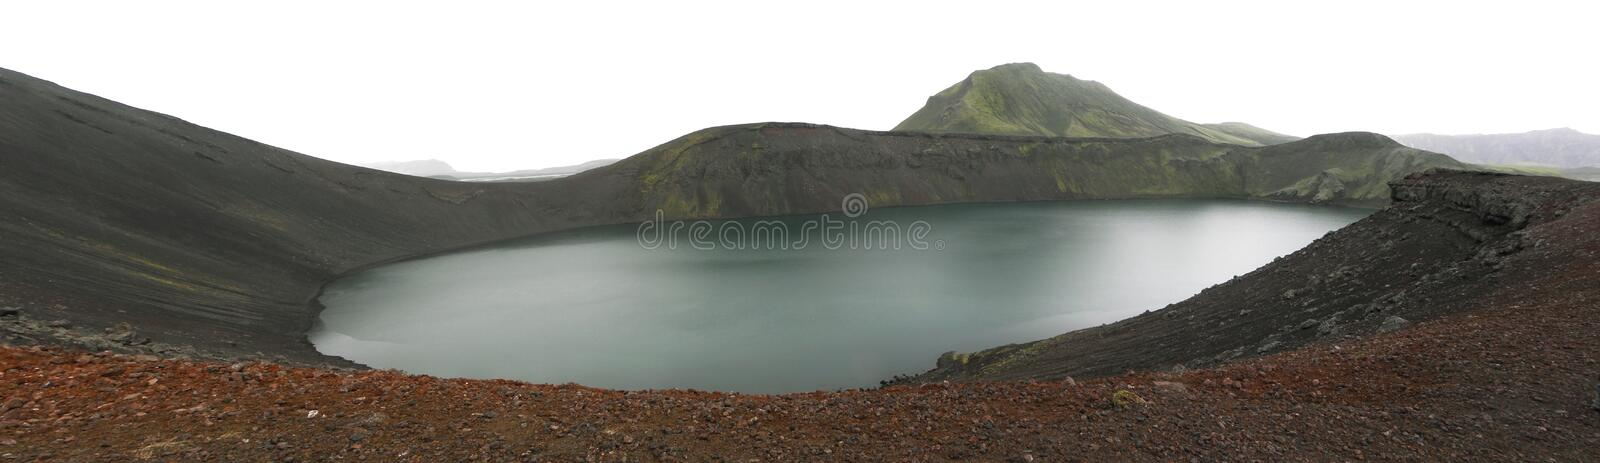 Crater See in Island stockfotos